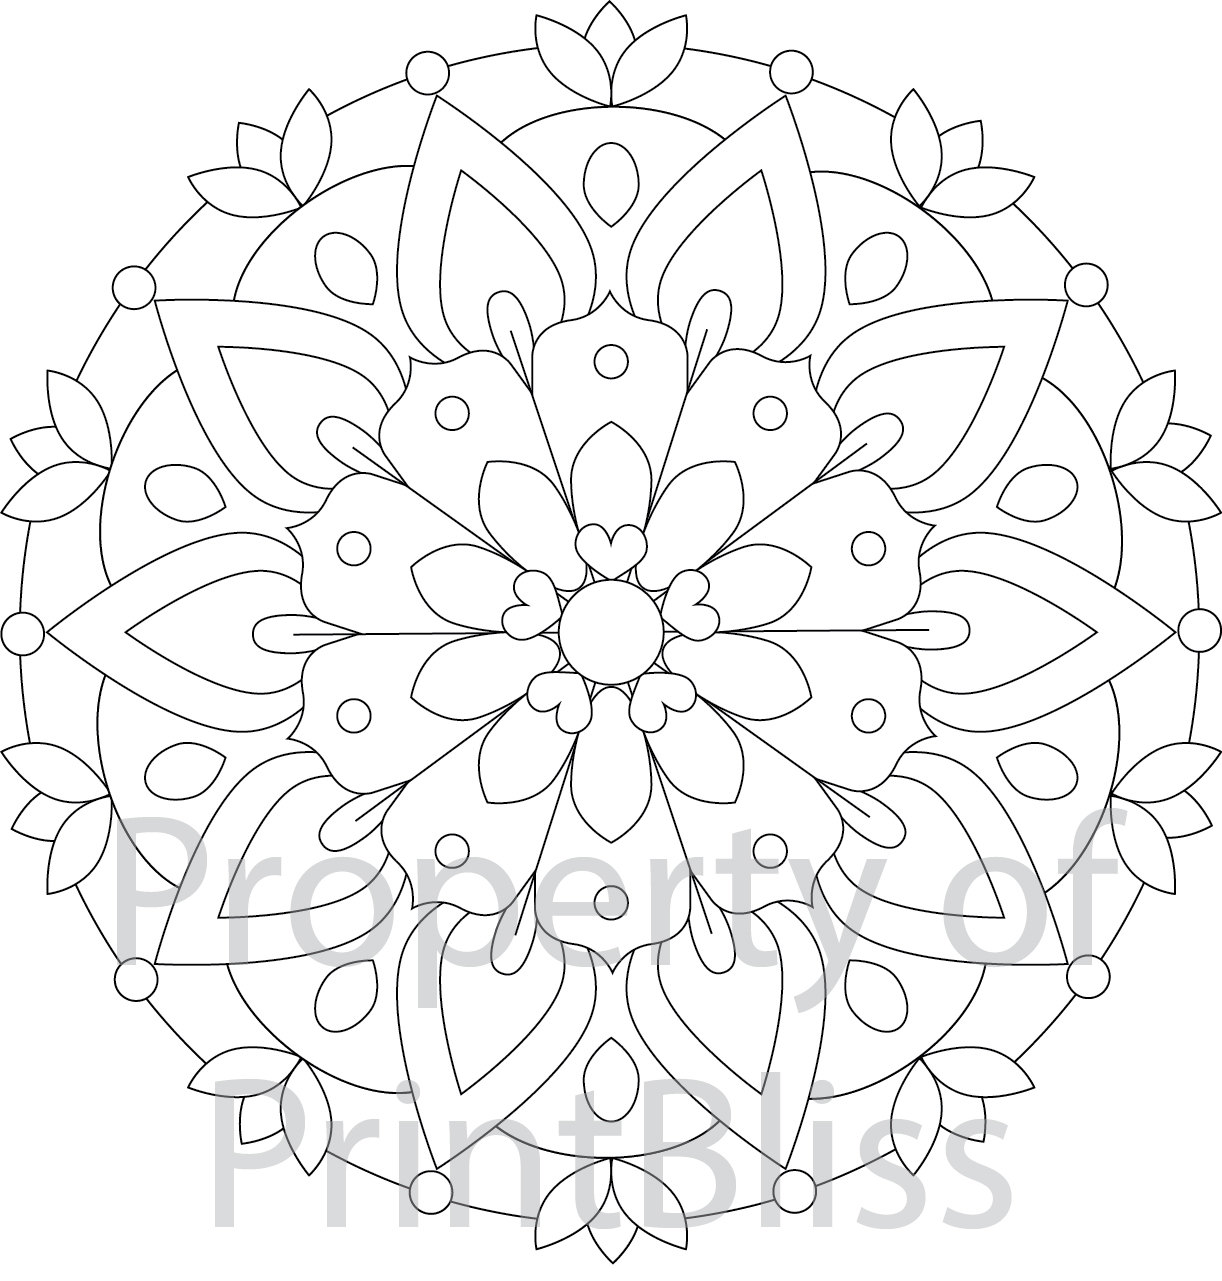 2 Flower Mandala Printable Coloring Page